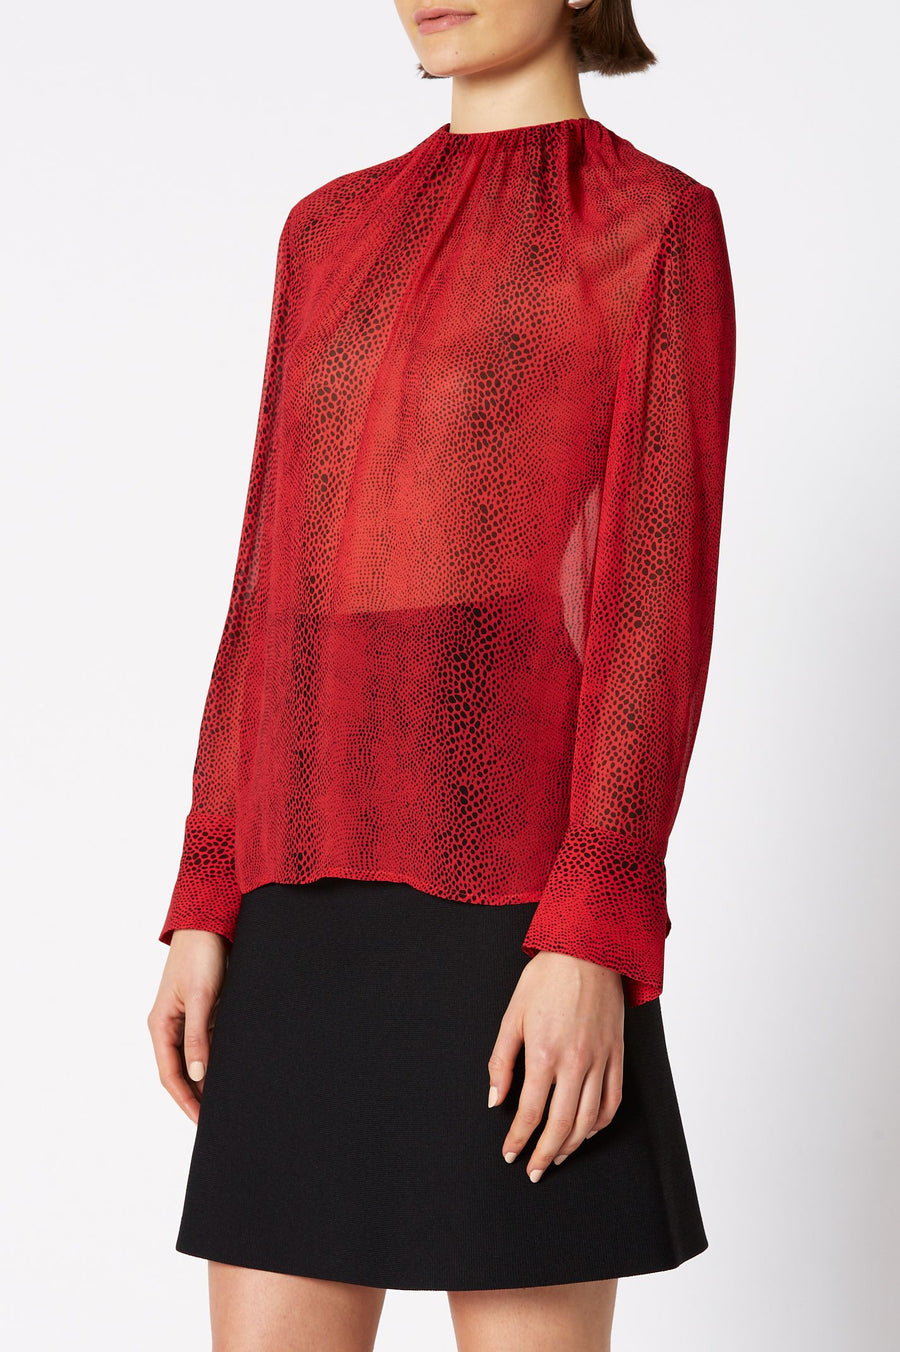 Reptile Print Blouse, Shirred Neck, Color Red, Woven Italian Fabric, Long Sleeve